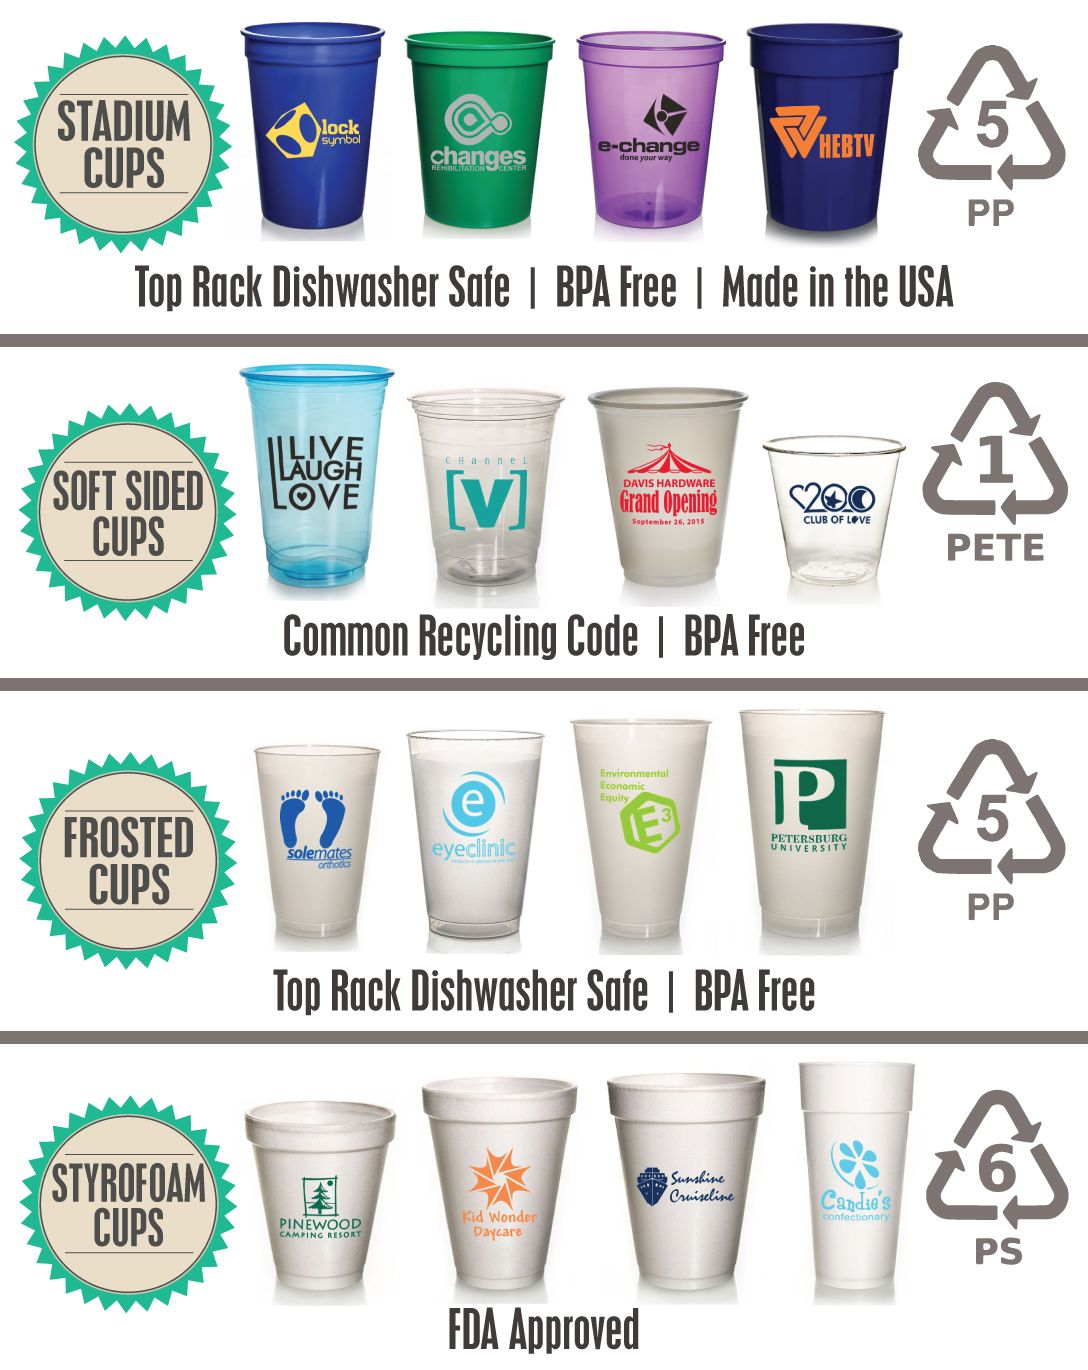 Recycling Codes 101, what they are & what Totally Promotional uses